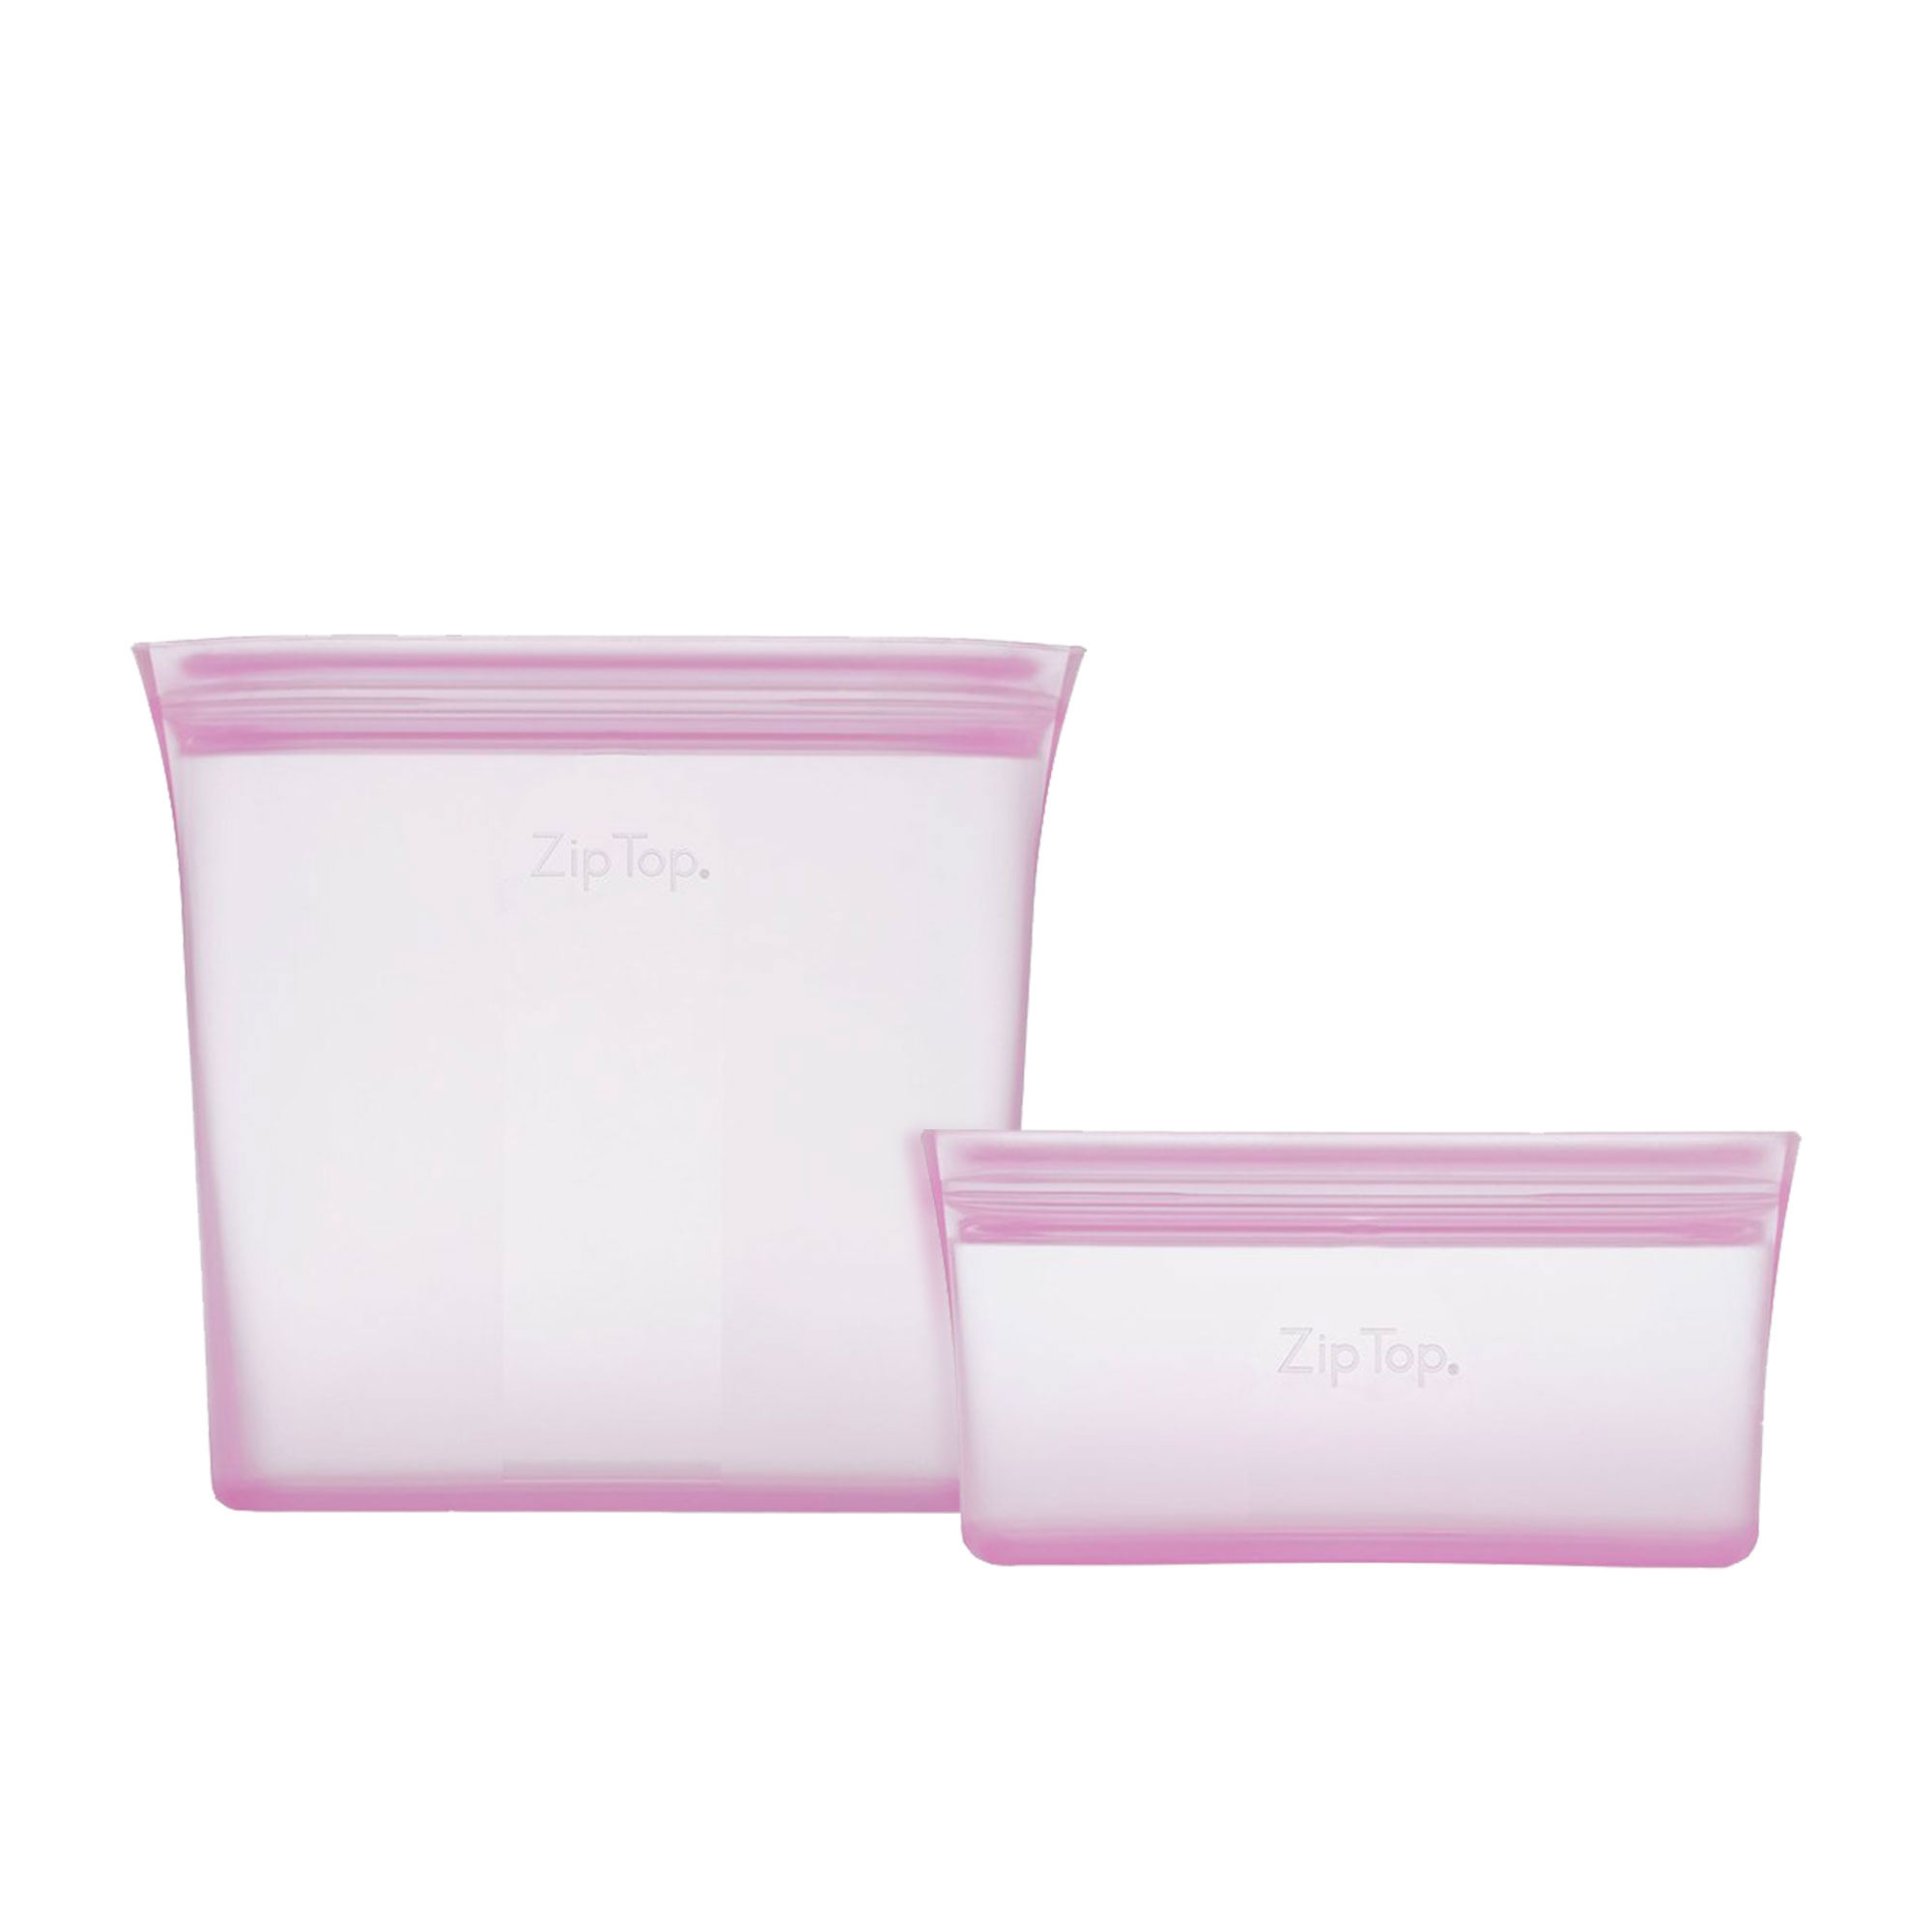 Zip Top 2pc Platinum Silicone Bag Set Lavender